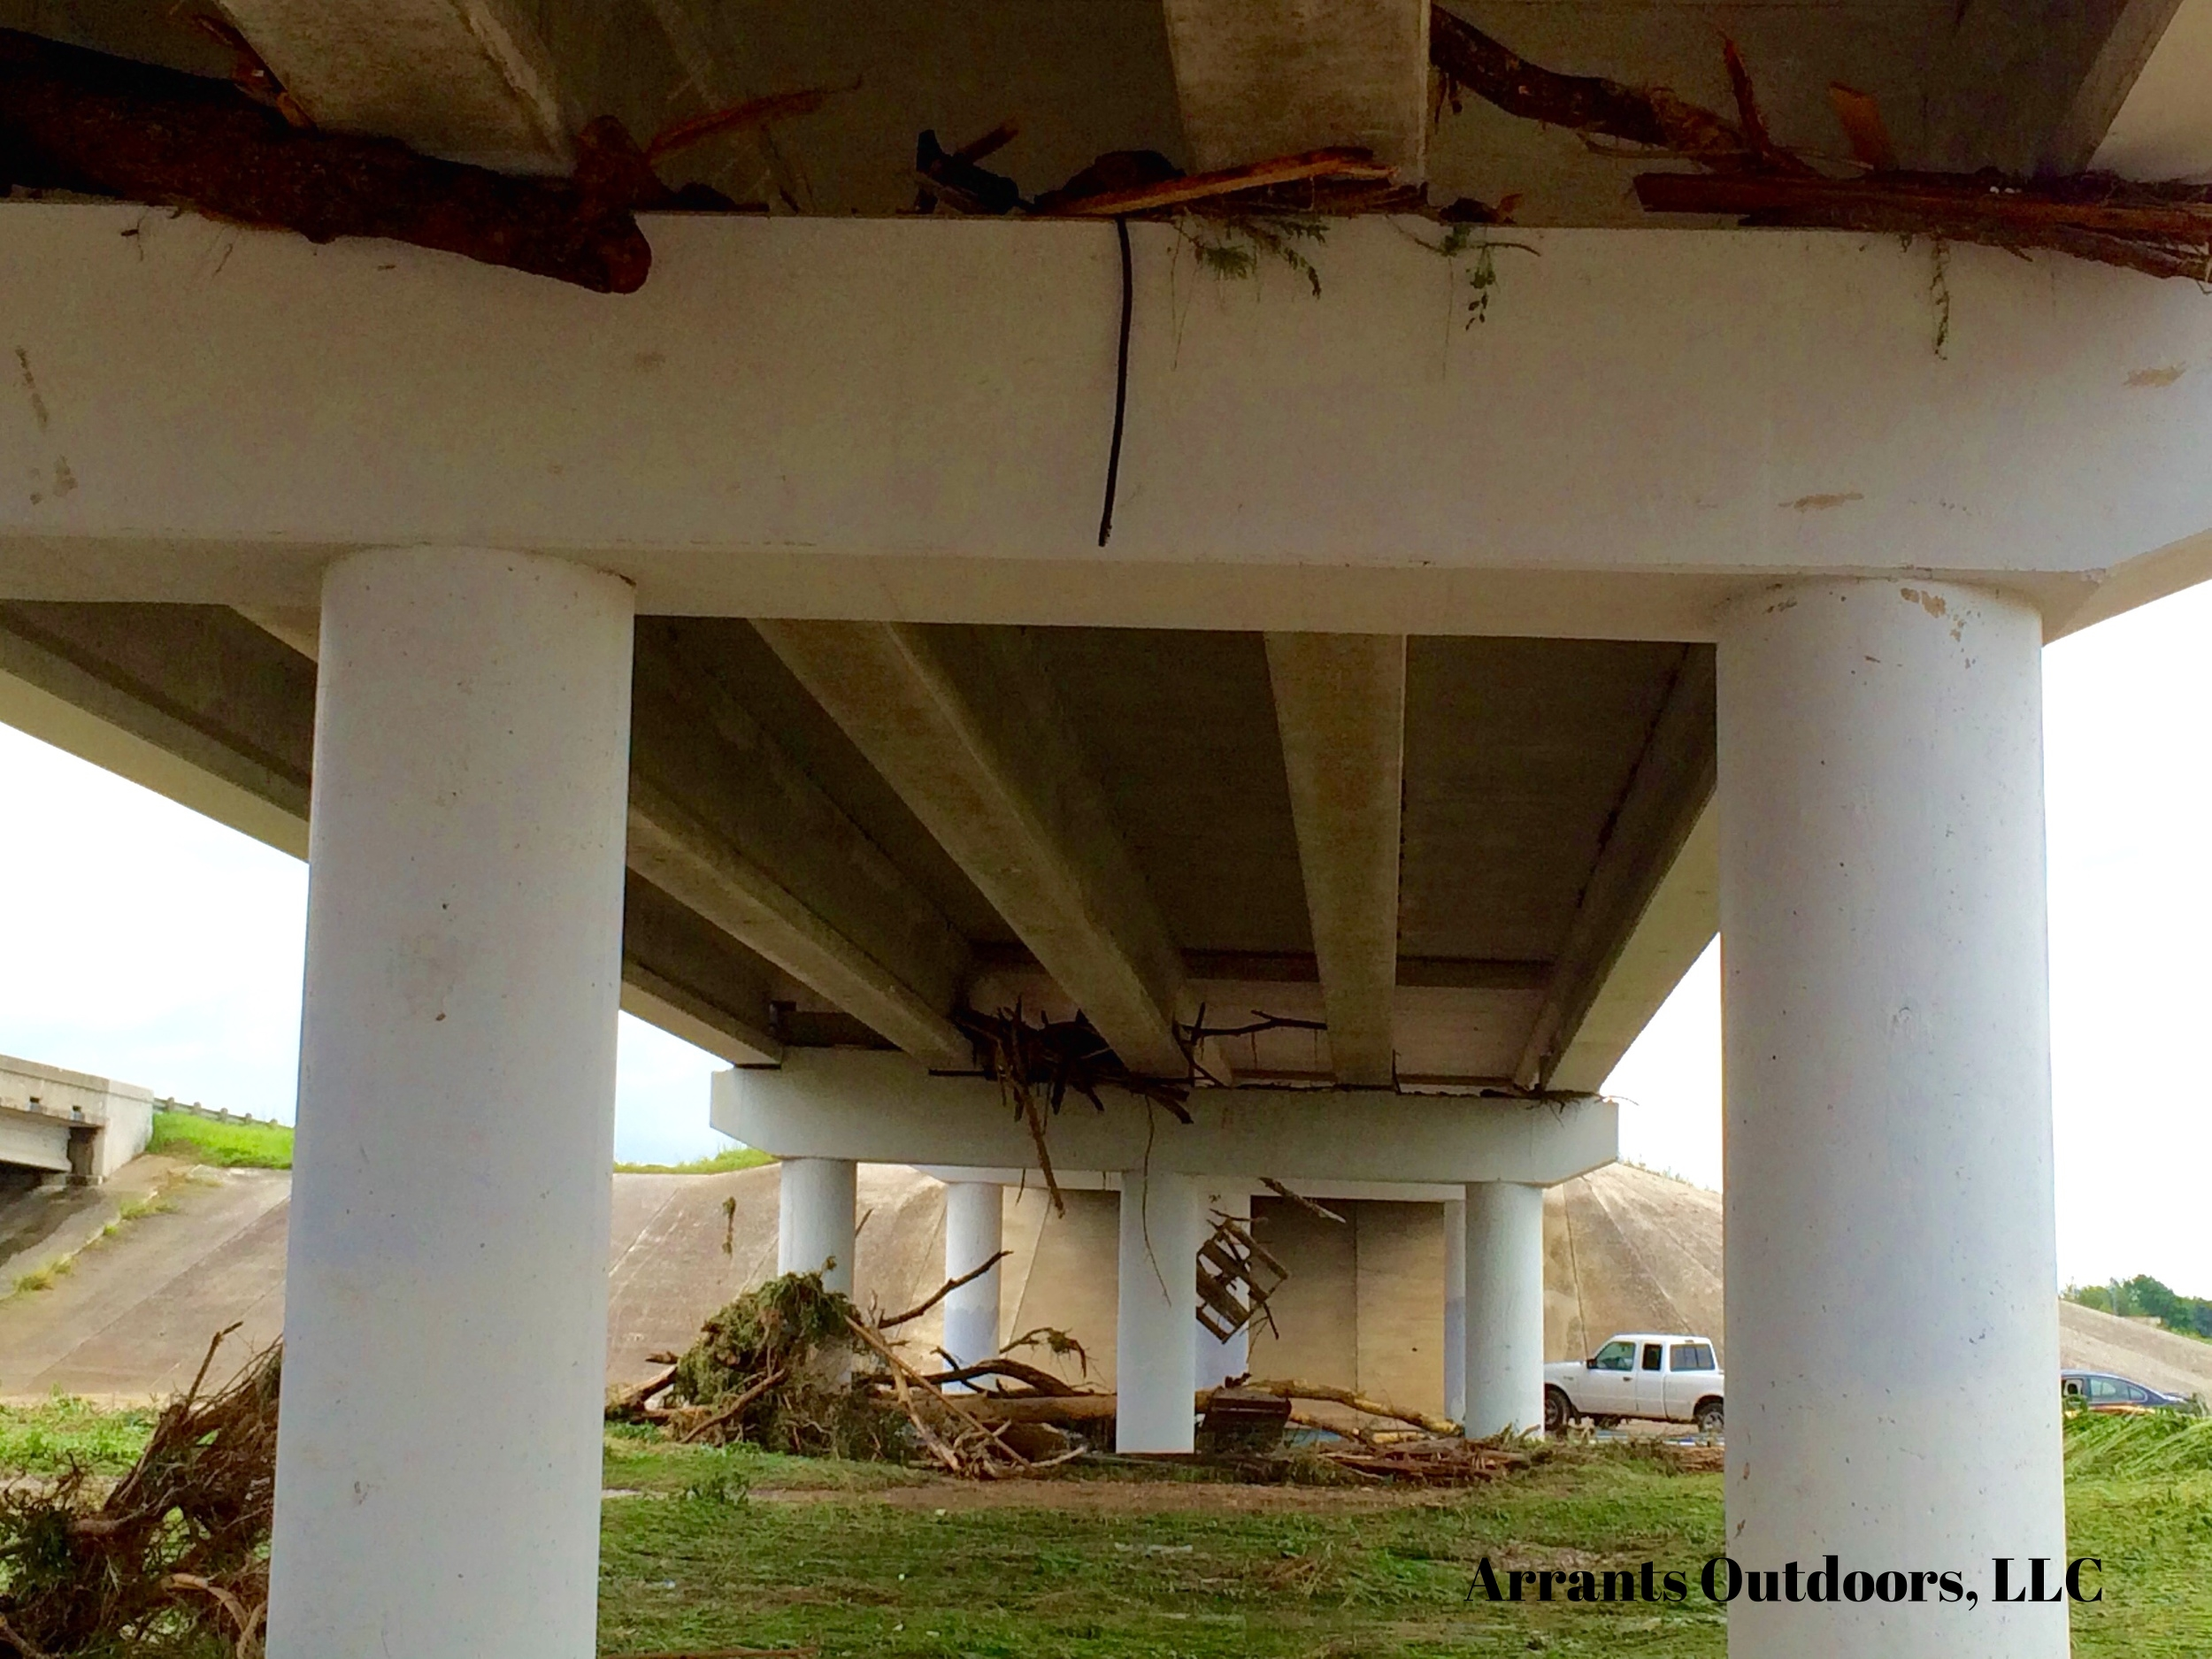 Debris under the bridge, even lodged underneath the bottom.  (Click to enlarge)